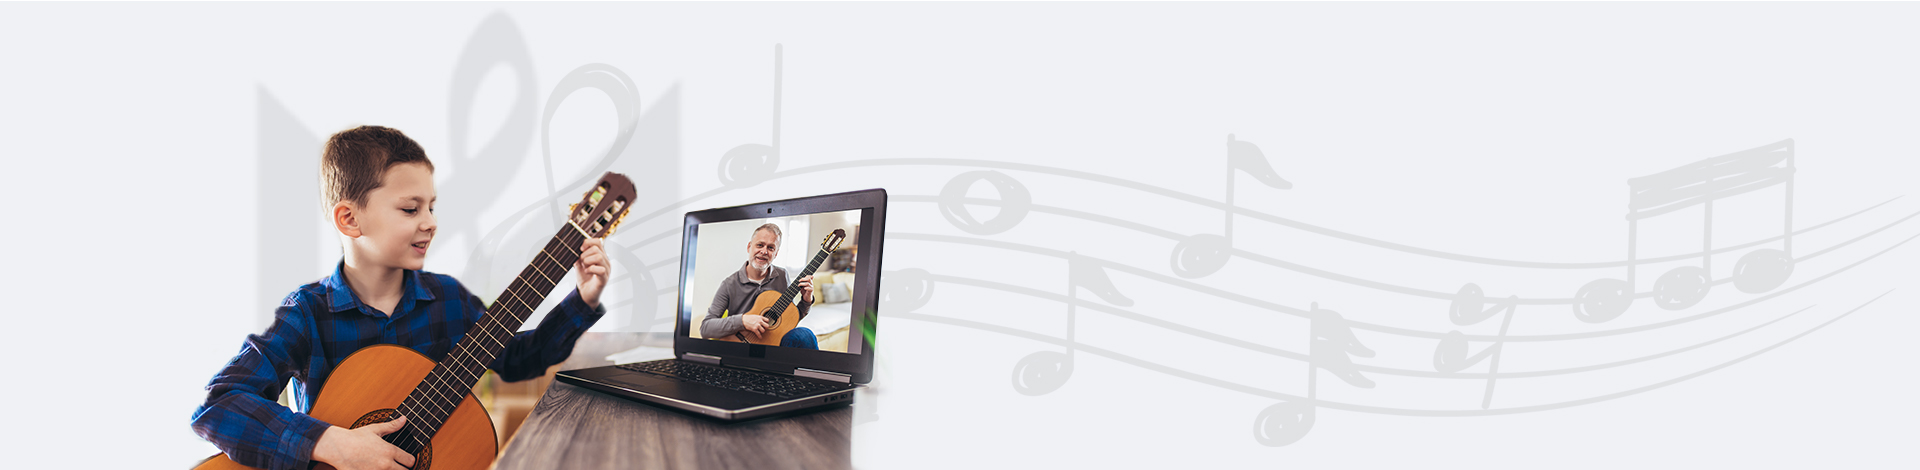 Guitar instructor teaching guitar lessons online (Online Lessons)